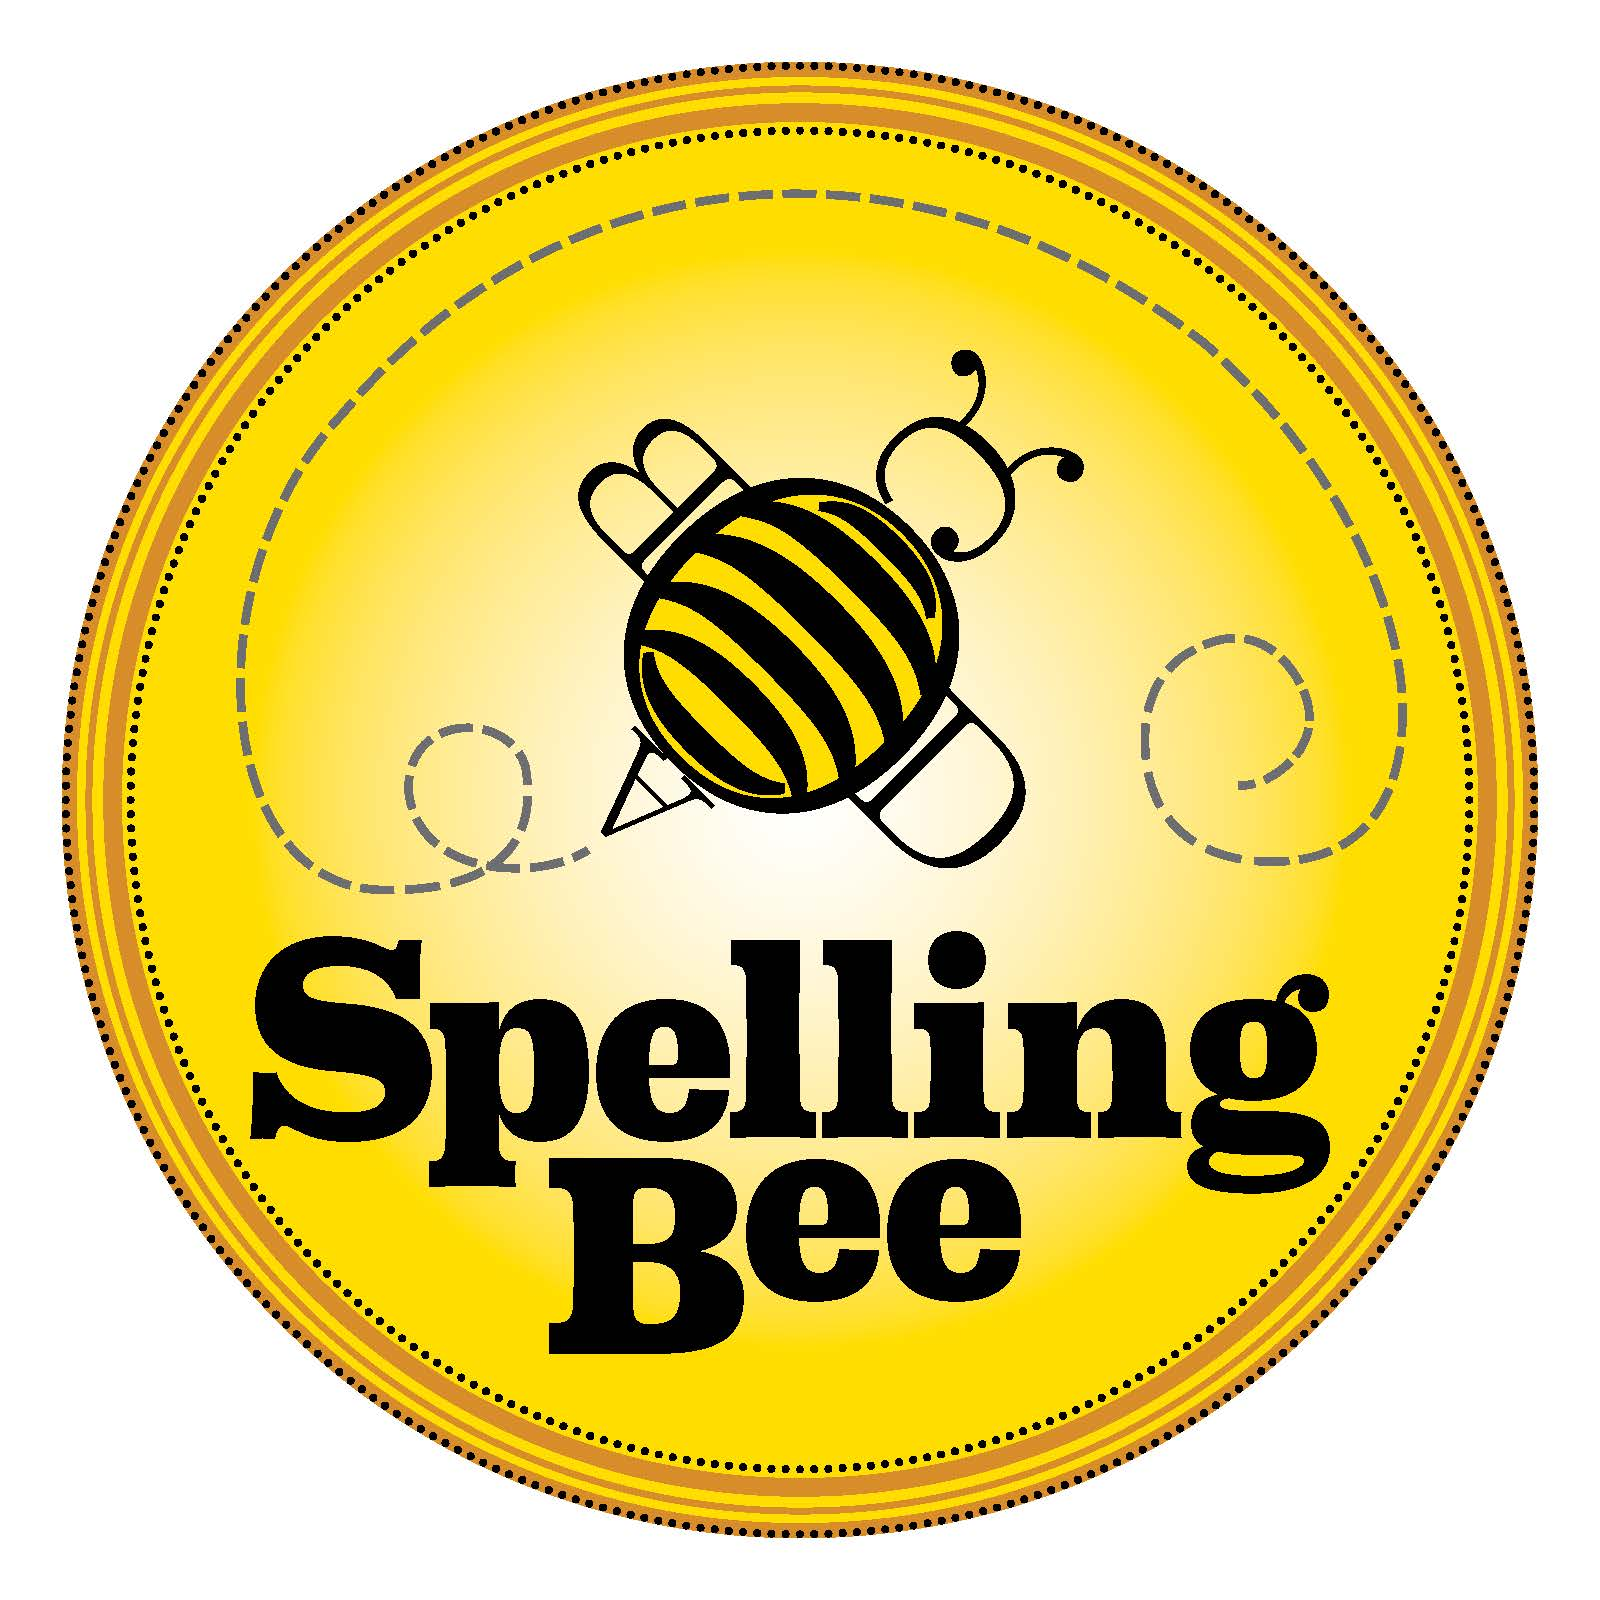 Animated spelling bee clipart clip freeuse library Spelling Bee Clipart - 64 cliparts clip freeuse library